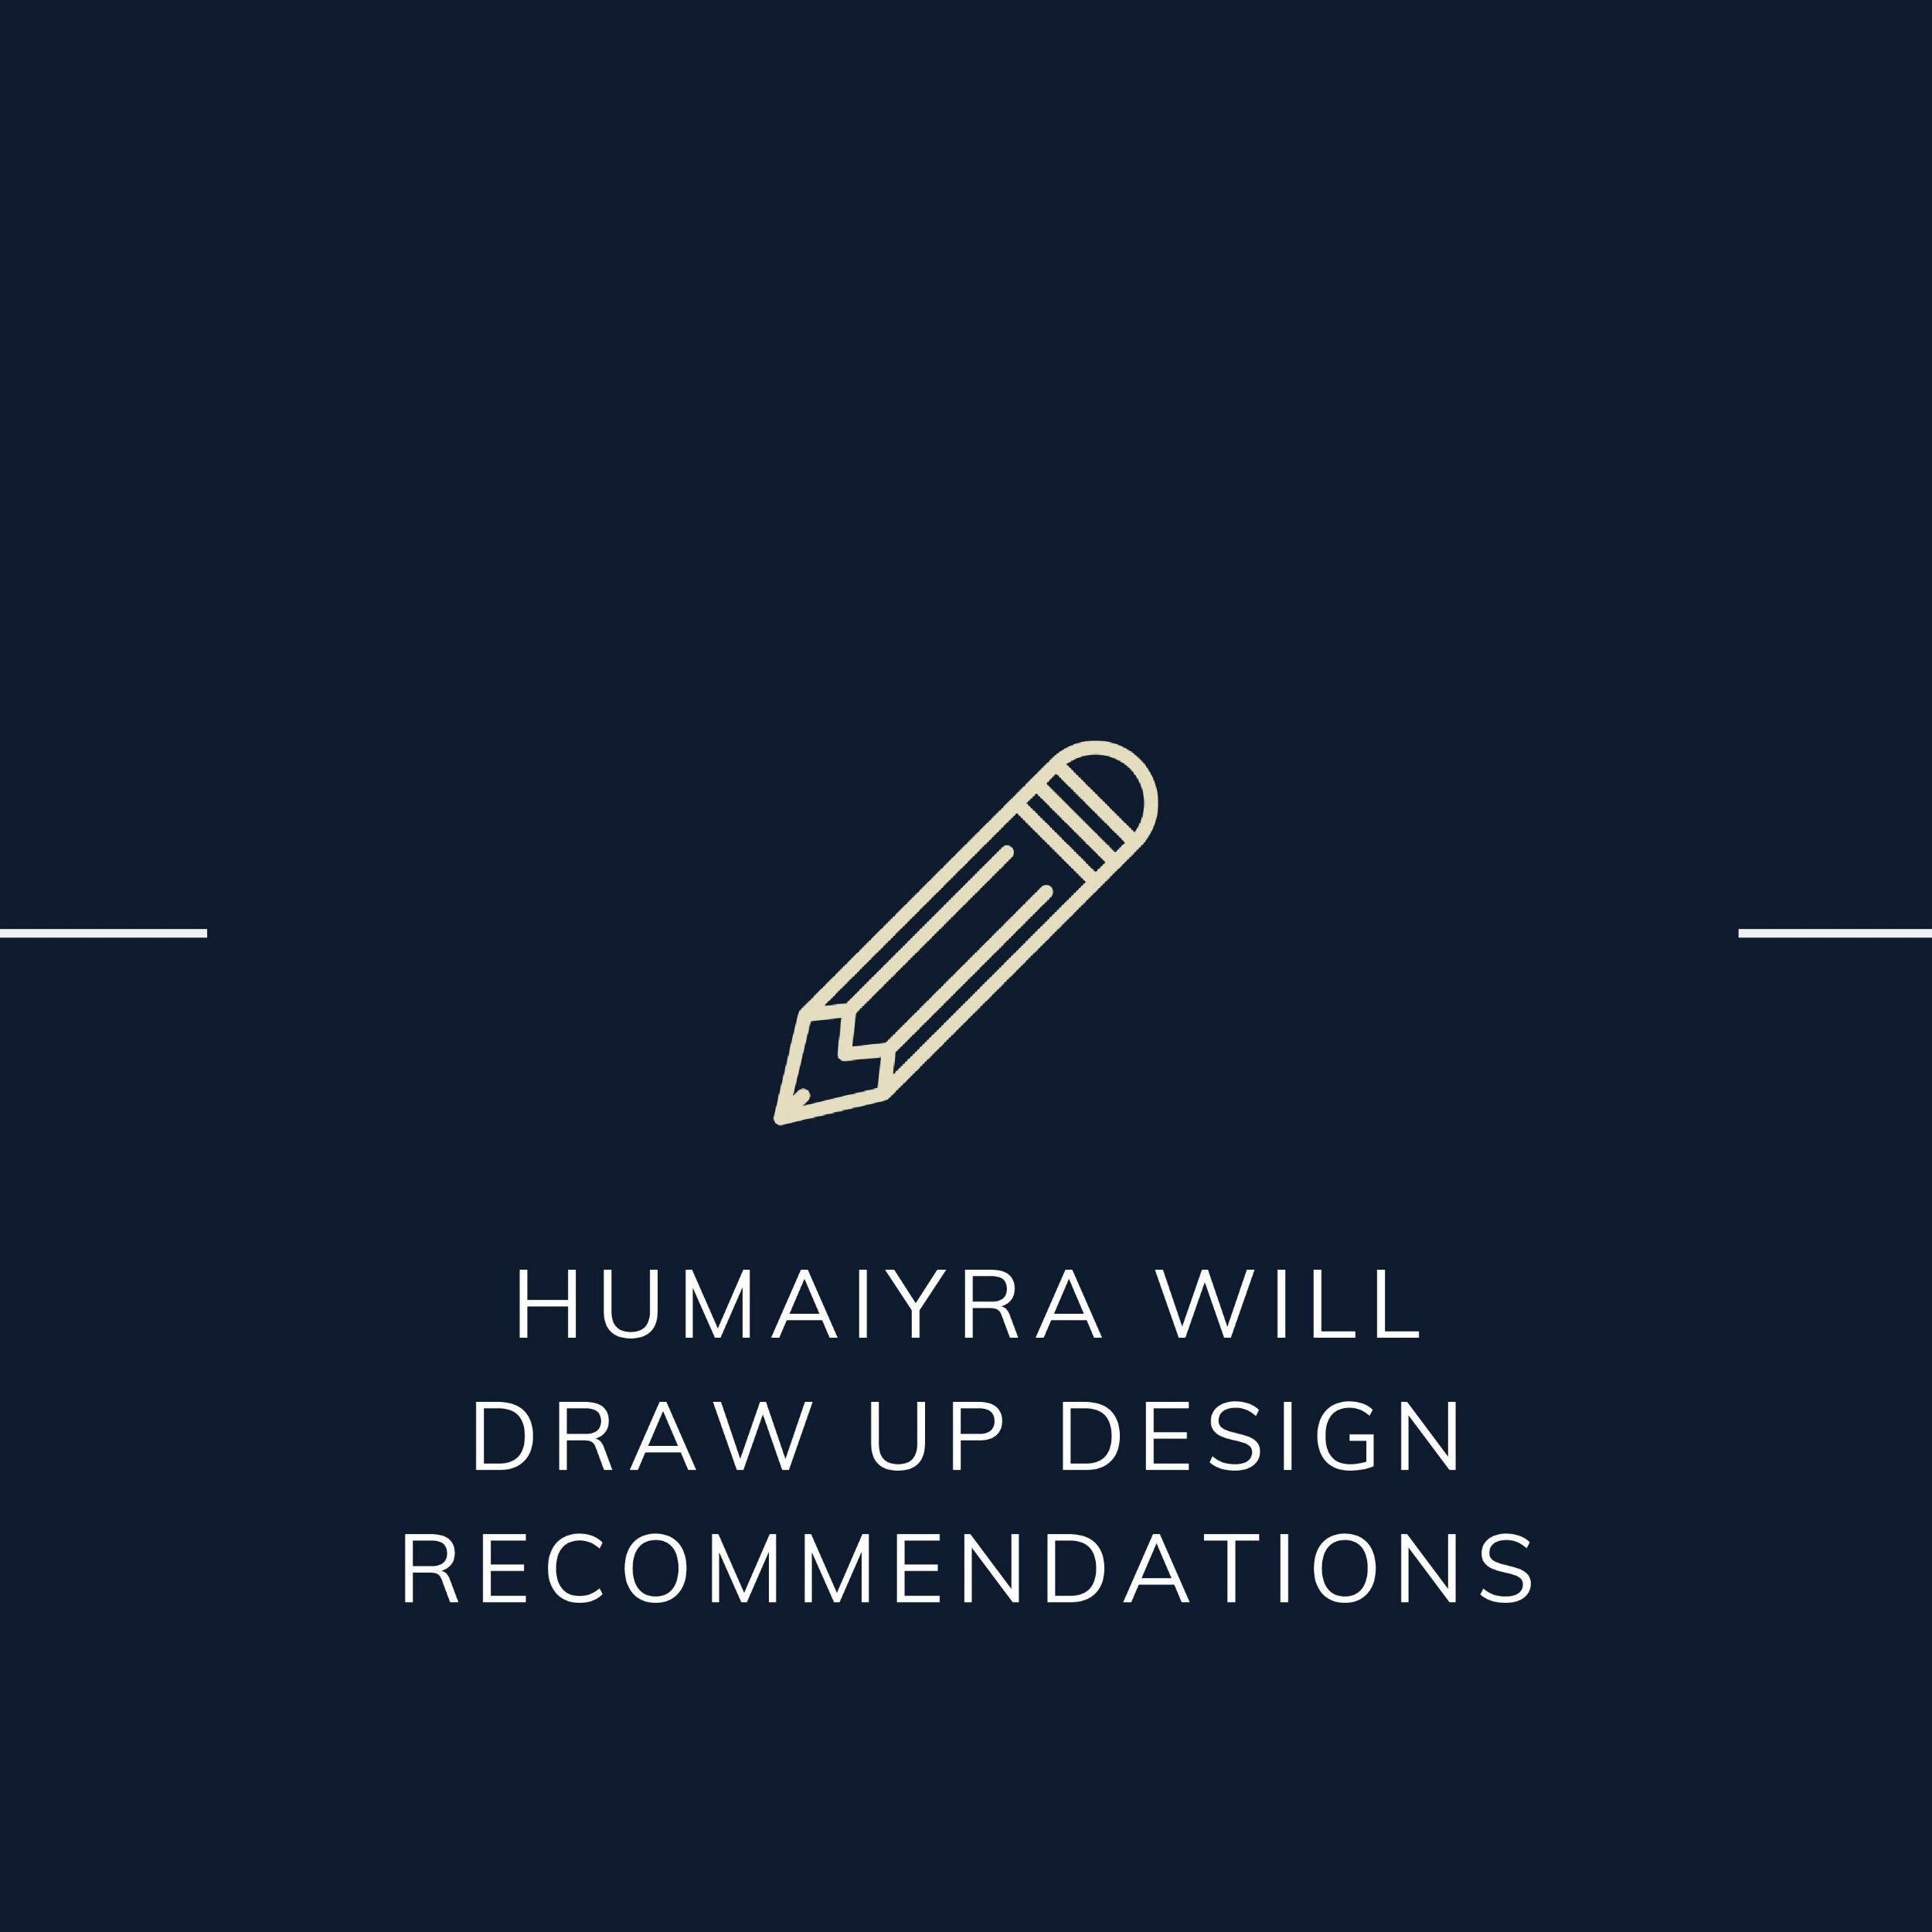 Humaiyra will draw up design recommendations